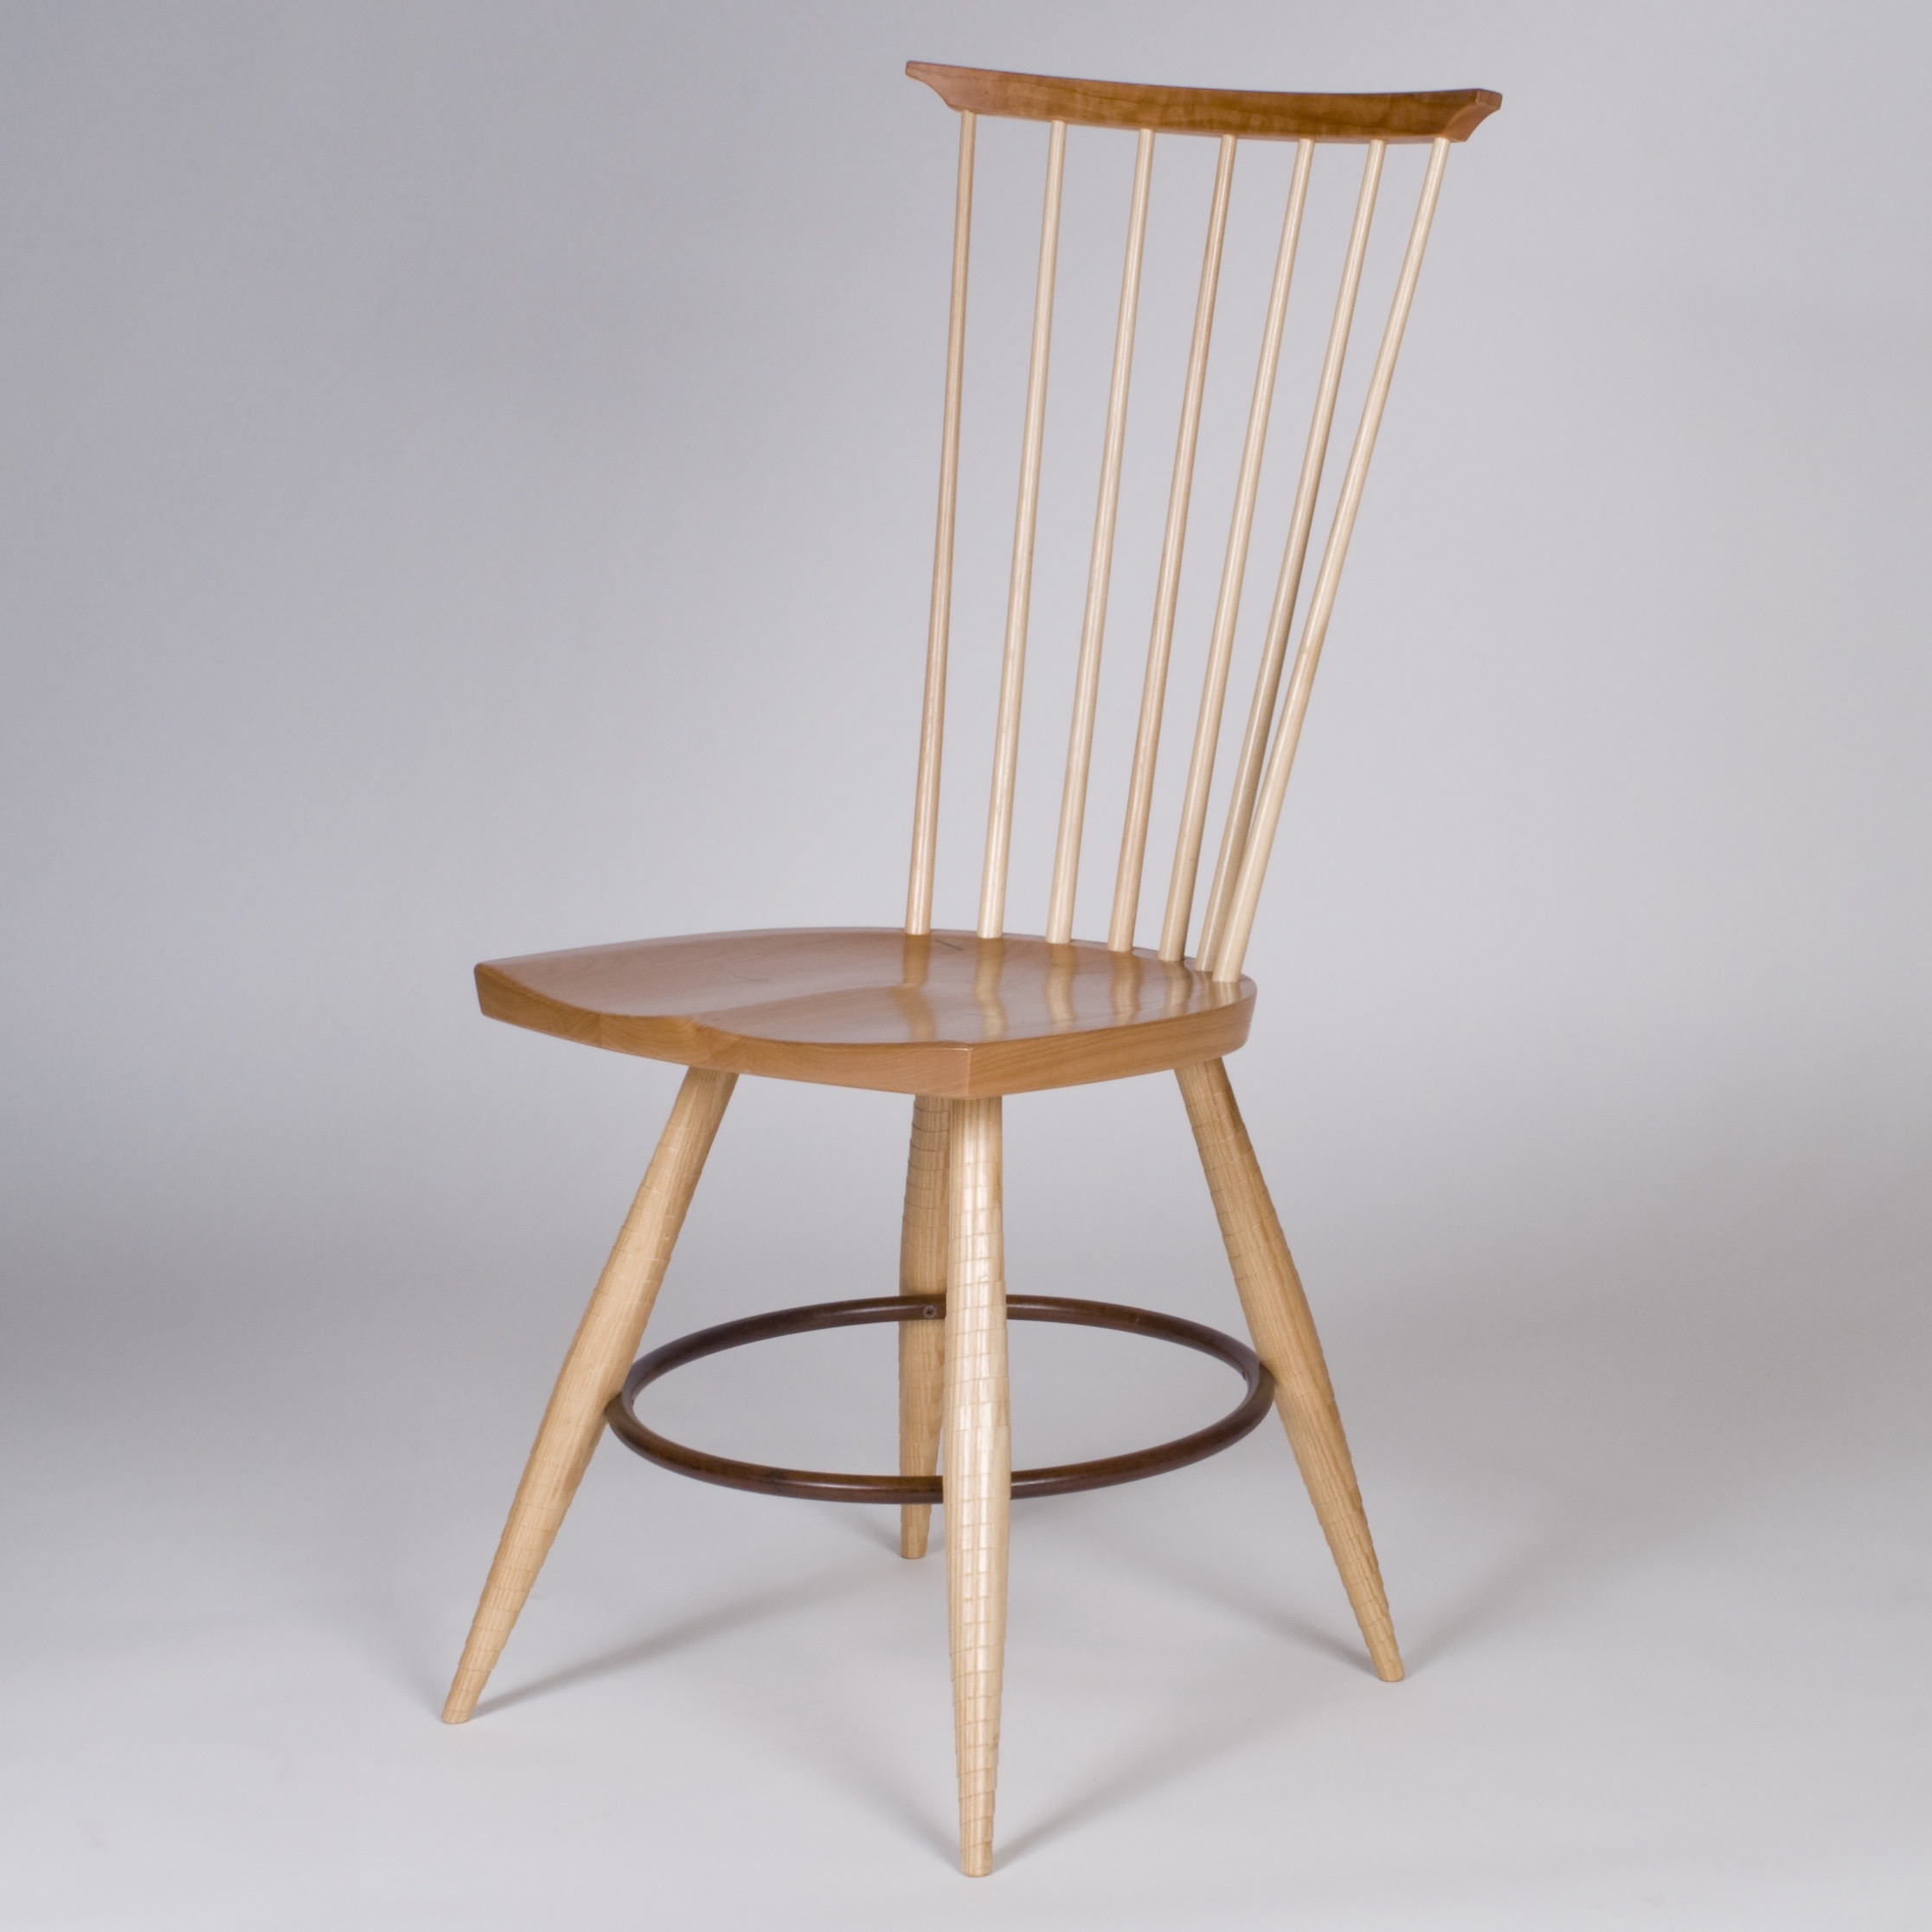 chair-spindle-00.jpg